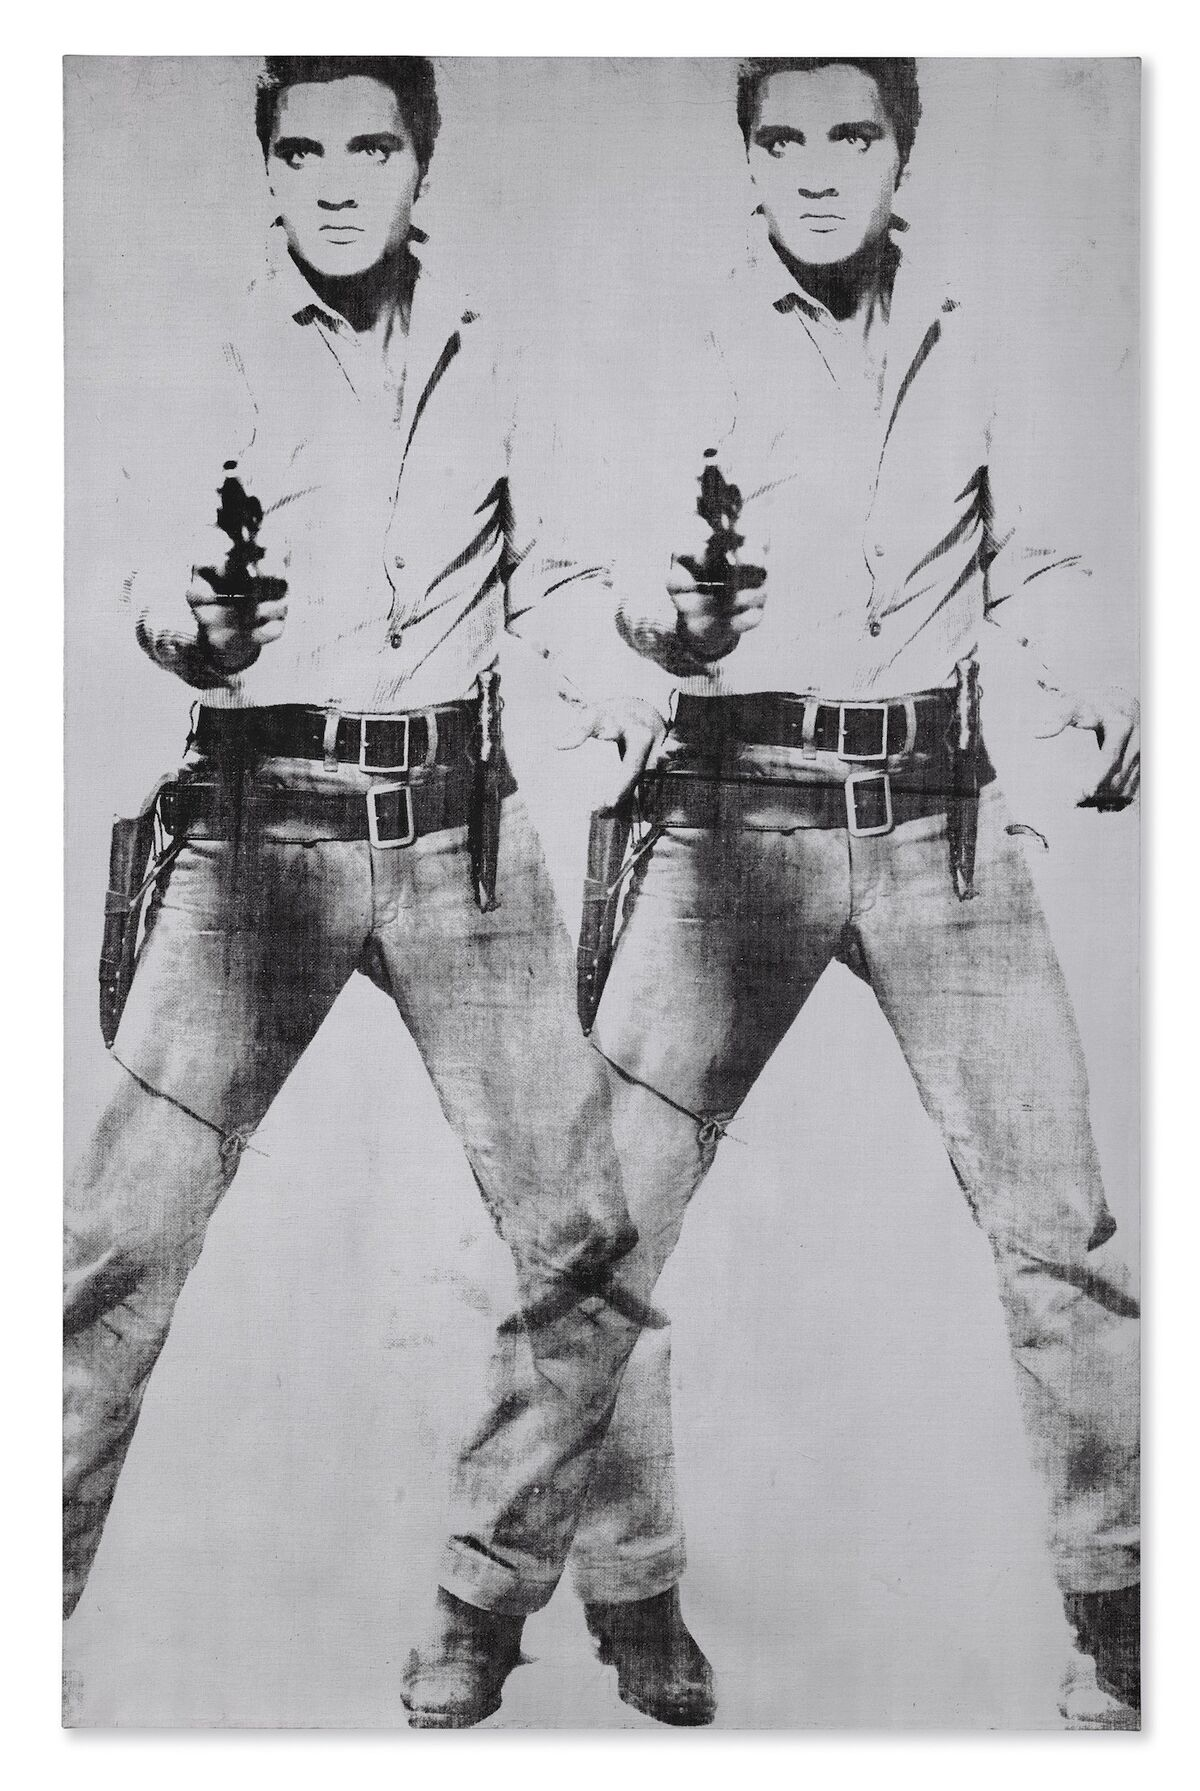 Andy Warhol, Double Elvis [Ferus Type], 1963. Courtesy of Christie's Images Ltd.